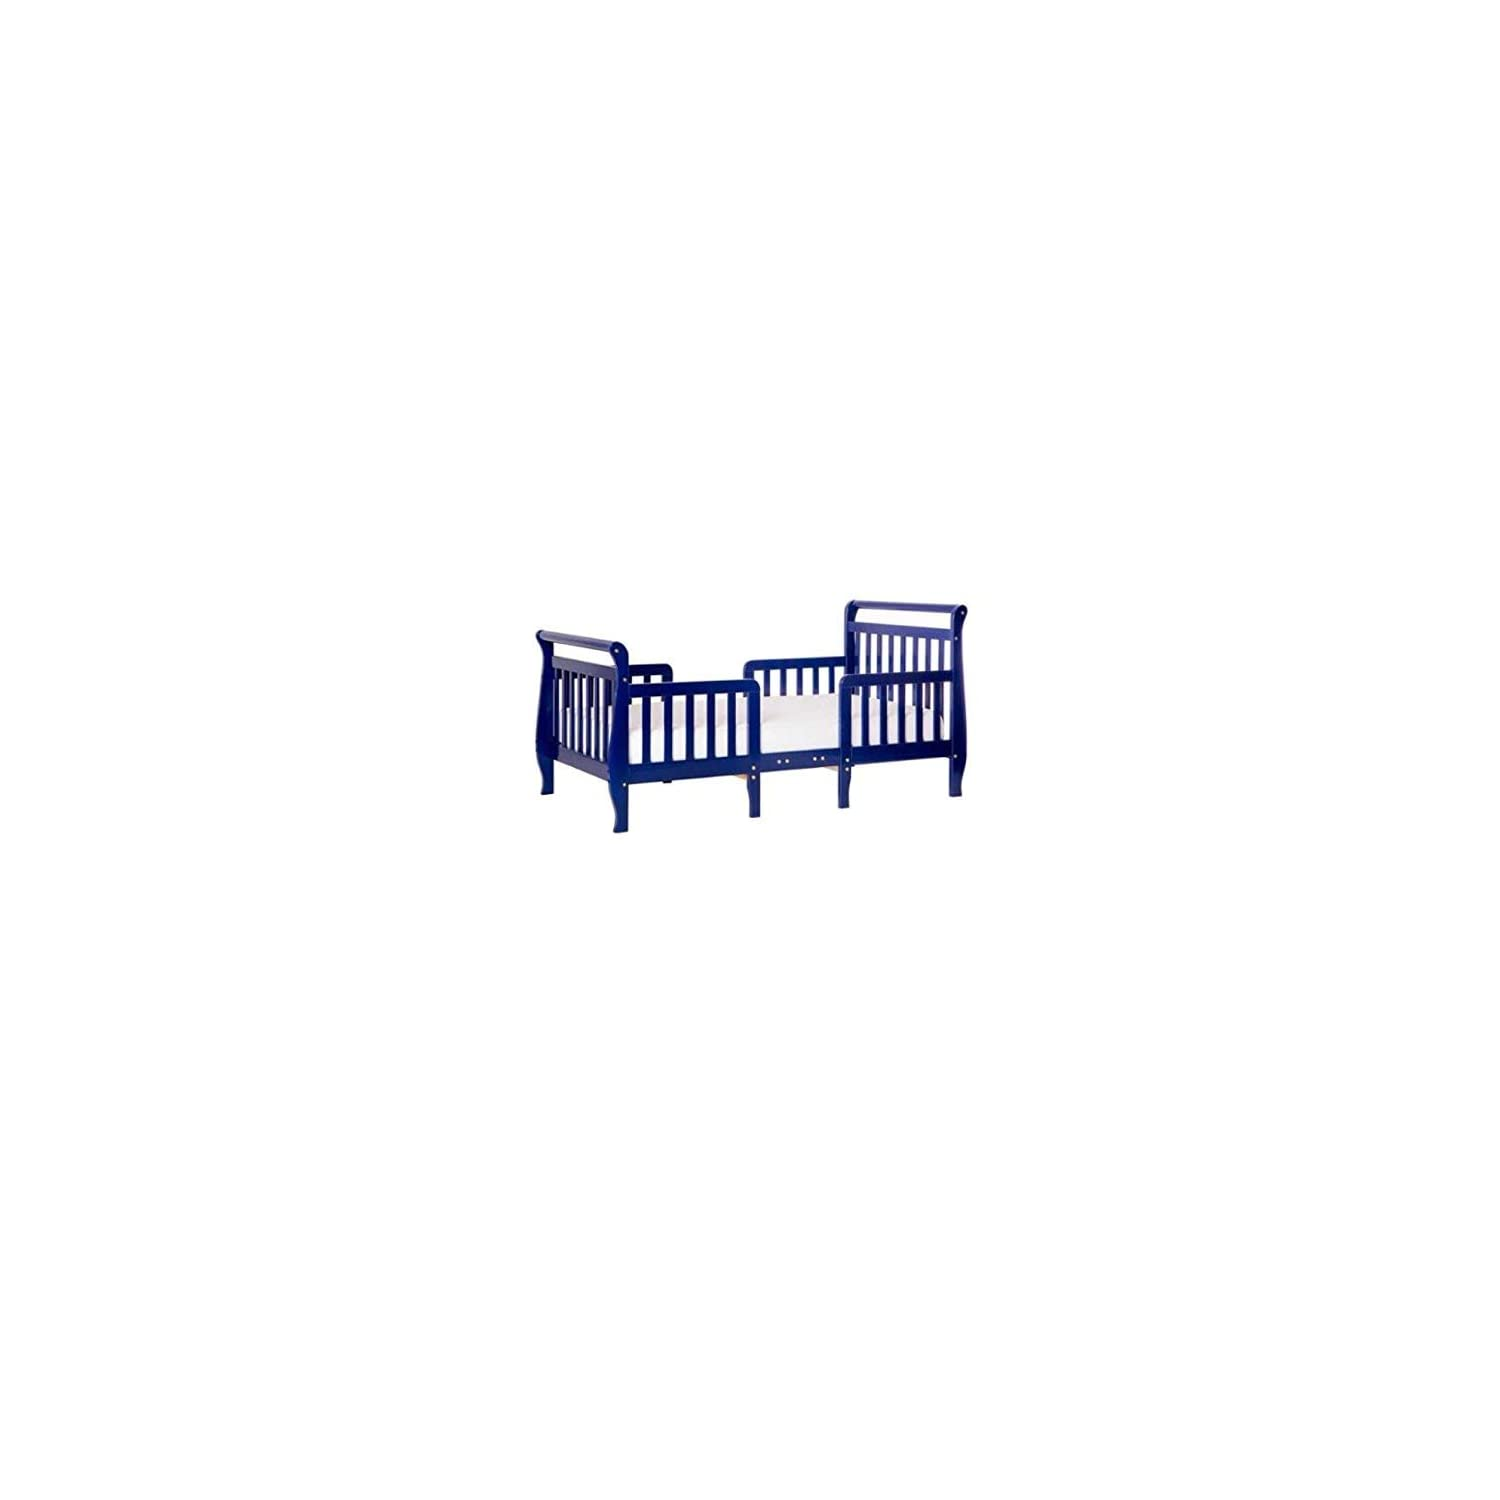 Dream On Me, Emma 3 in 1 Convertible Toddler Bed, Dark Blue with Spring Crib and Toddler Bed Mattress, Twilight